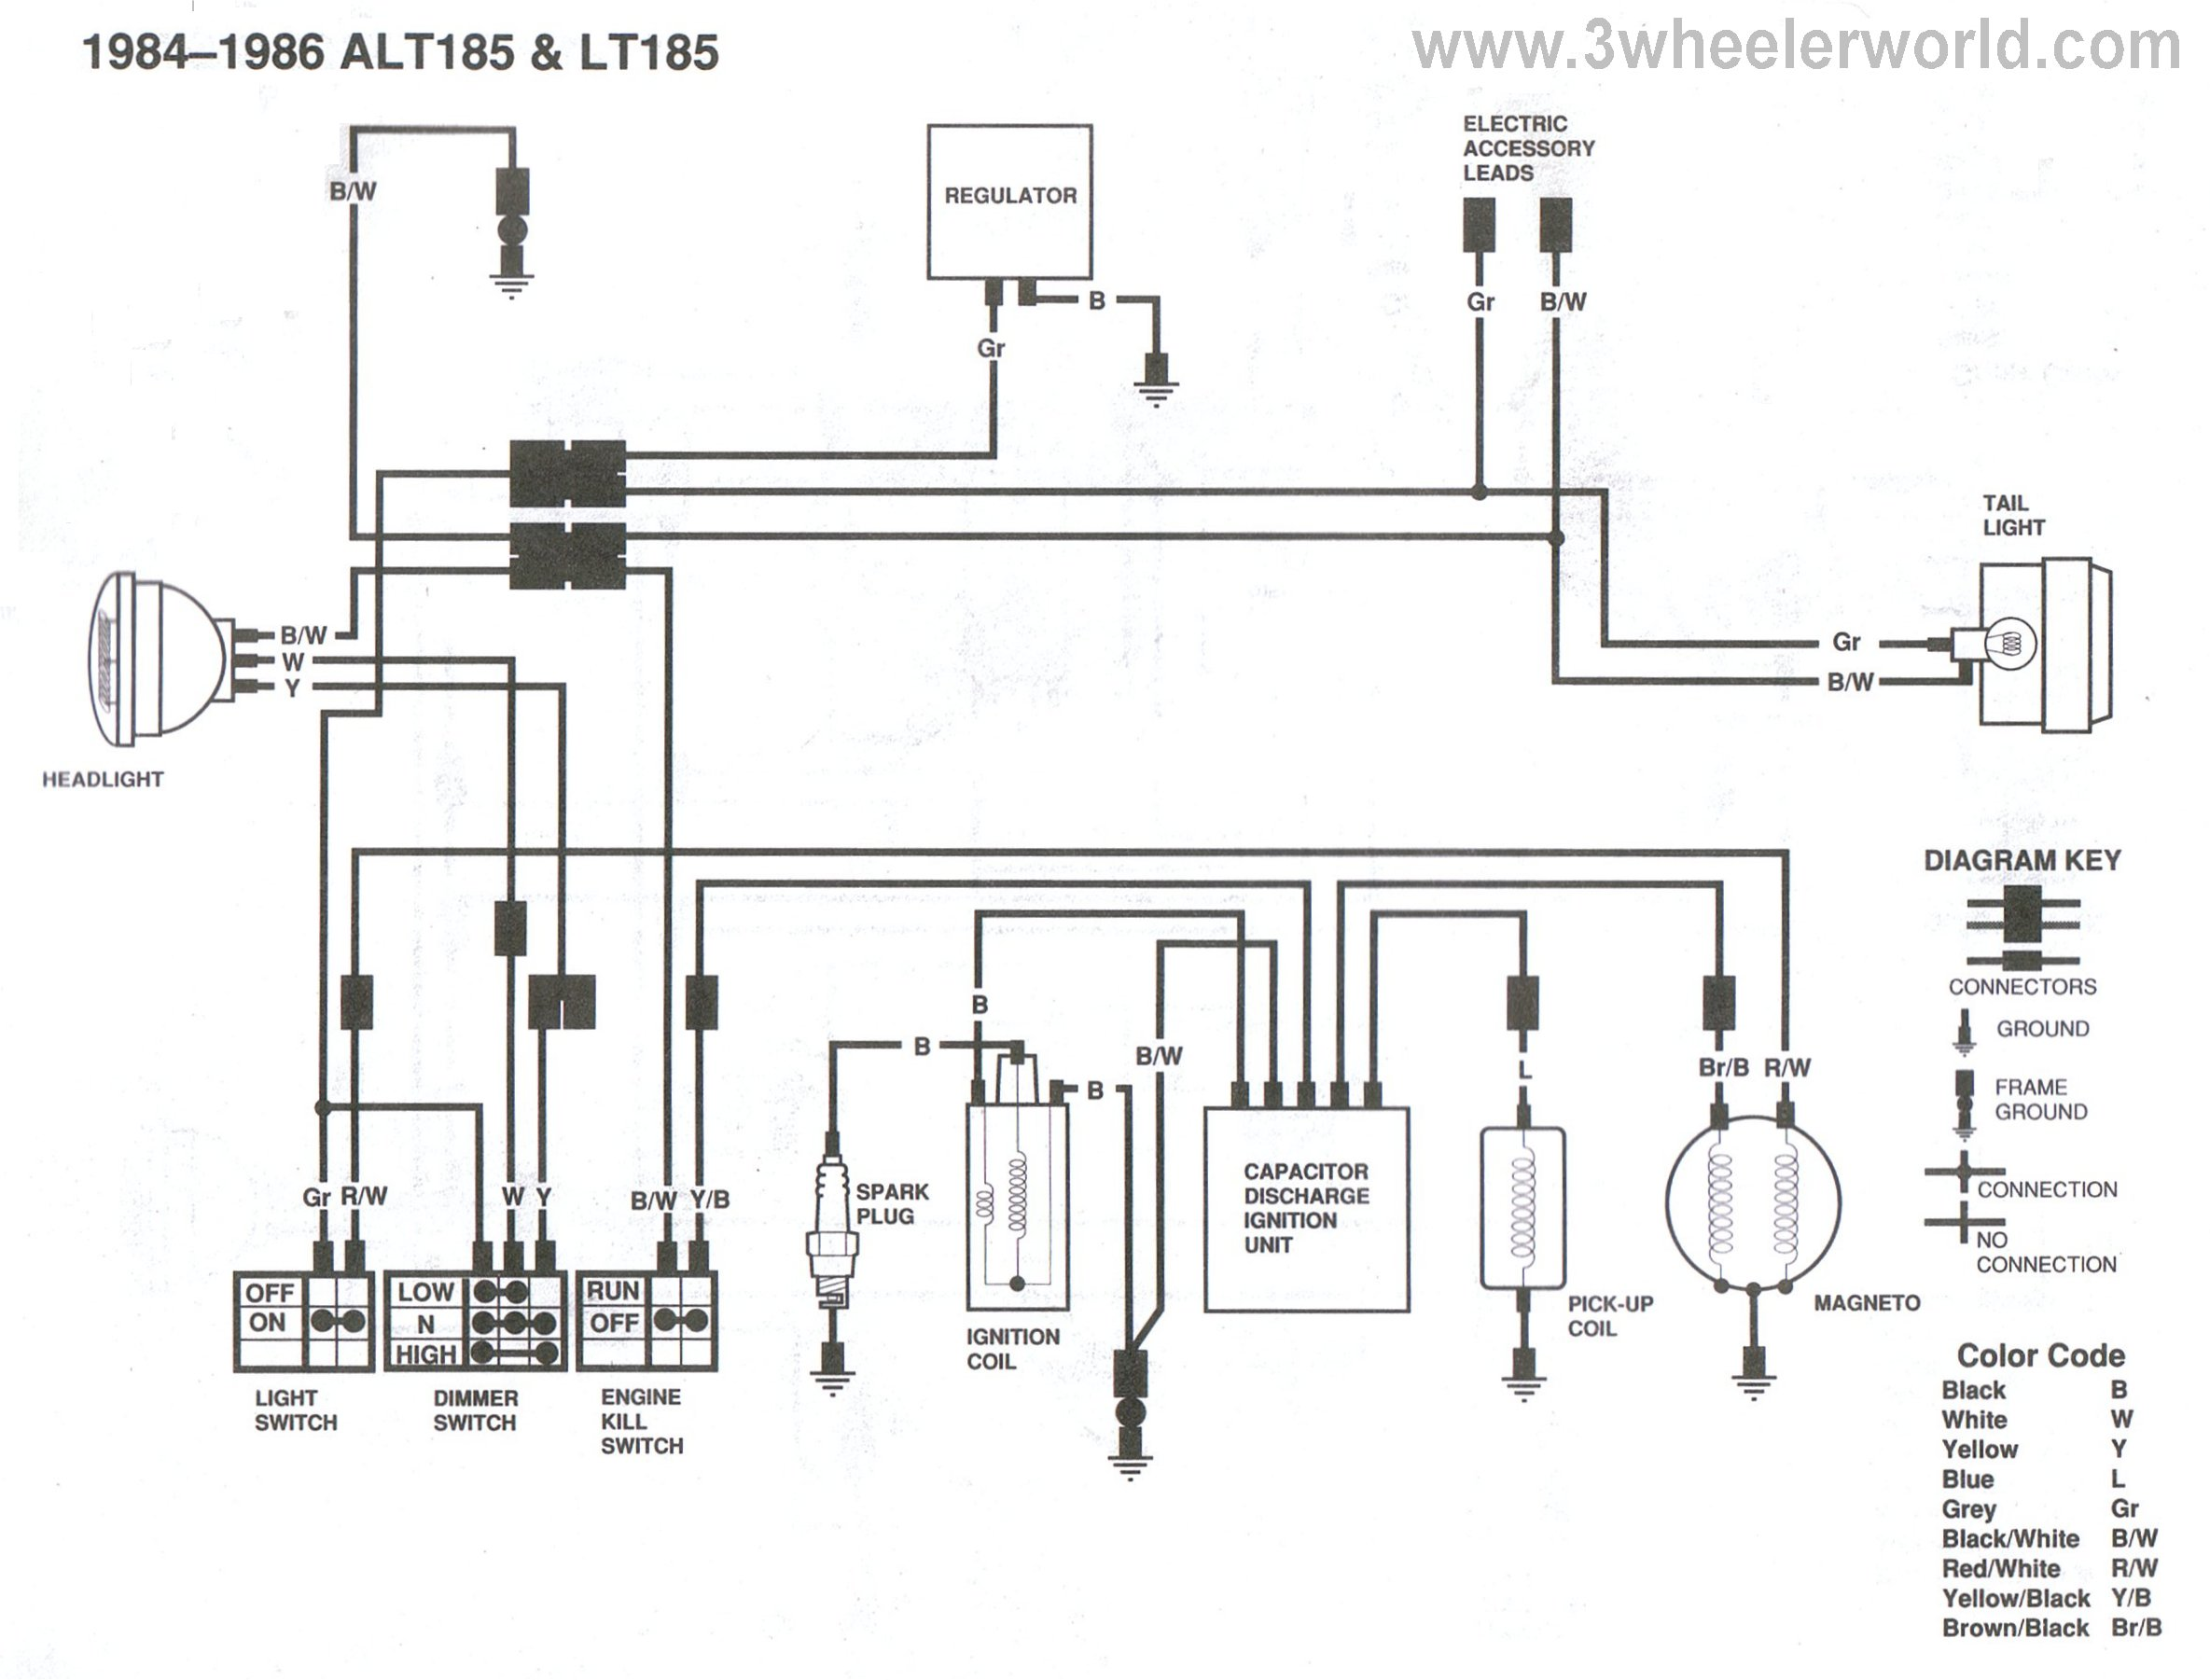 1985 Toyota Carburetor Diagram on 1981 Toyota 4x4 Wiring Diagram